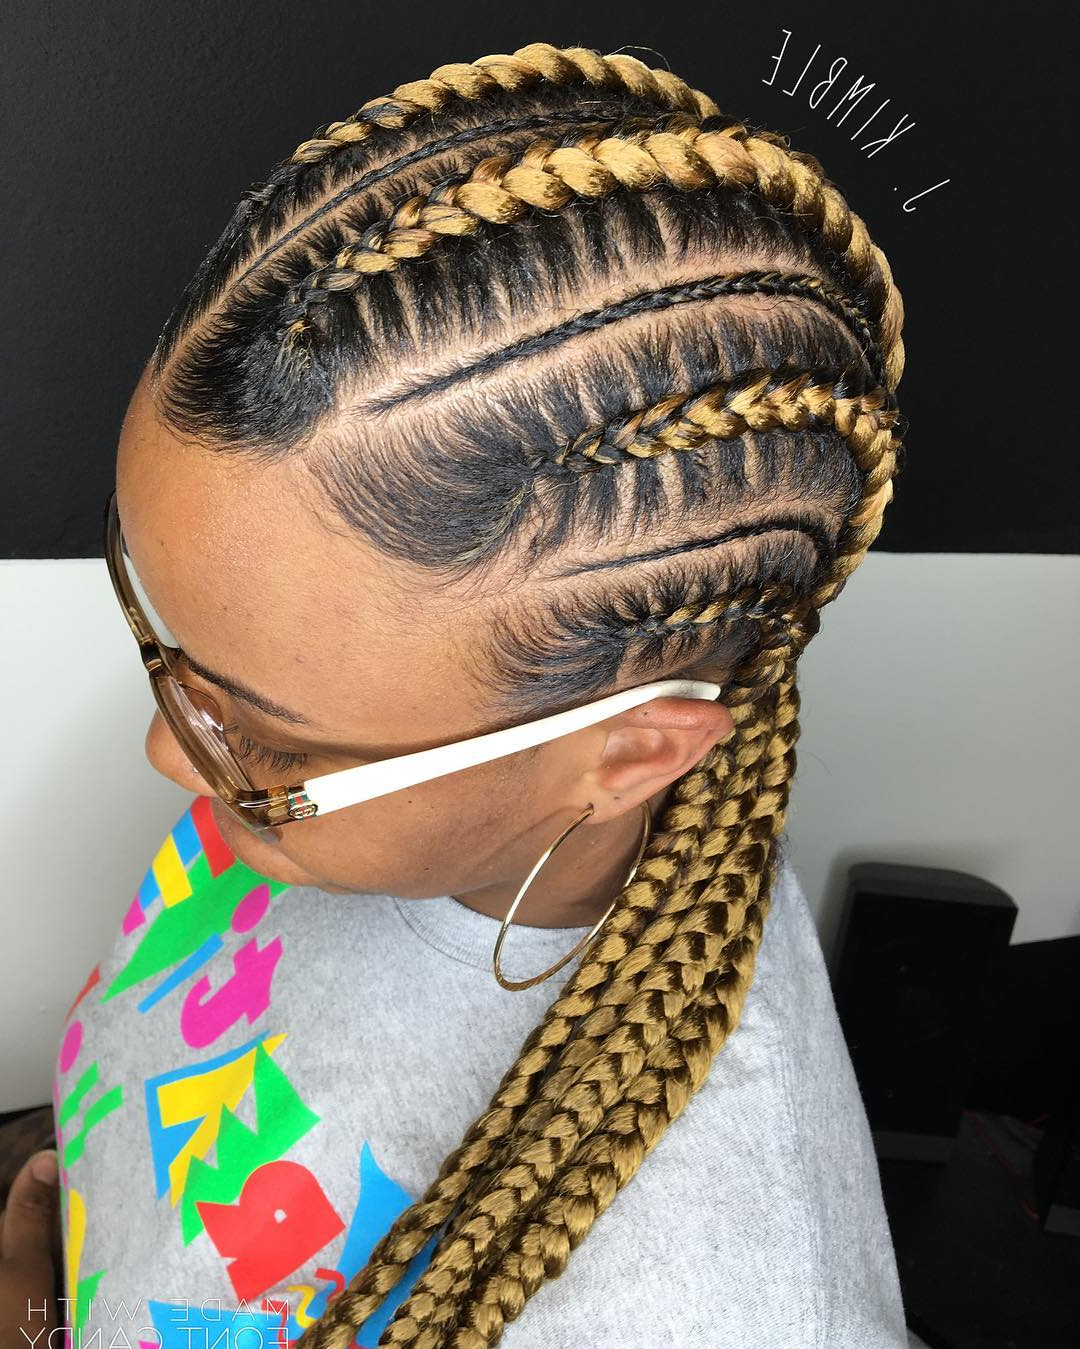 70 Best Black Braided Hairstyles That Turn Heads In 2019 Pertaining To 2020 Blonde Braid Hairstyles (View 8 of 20)